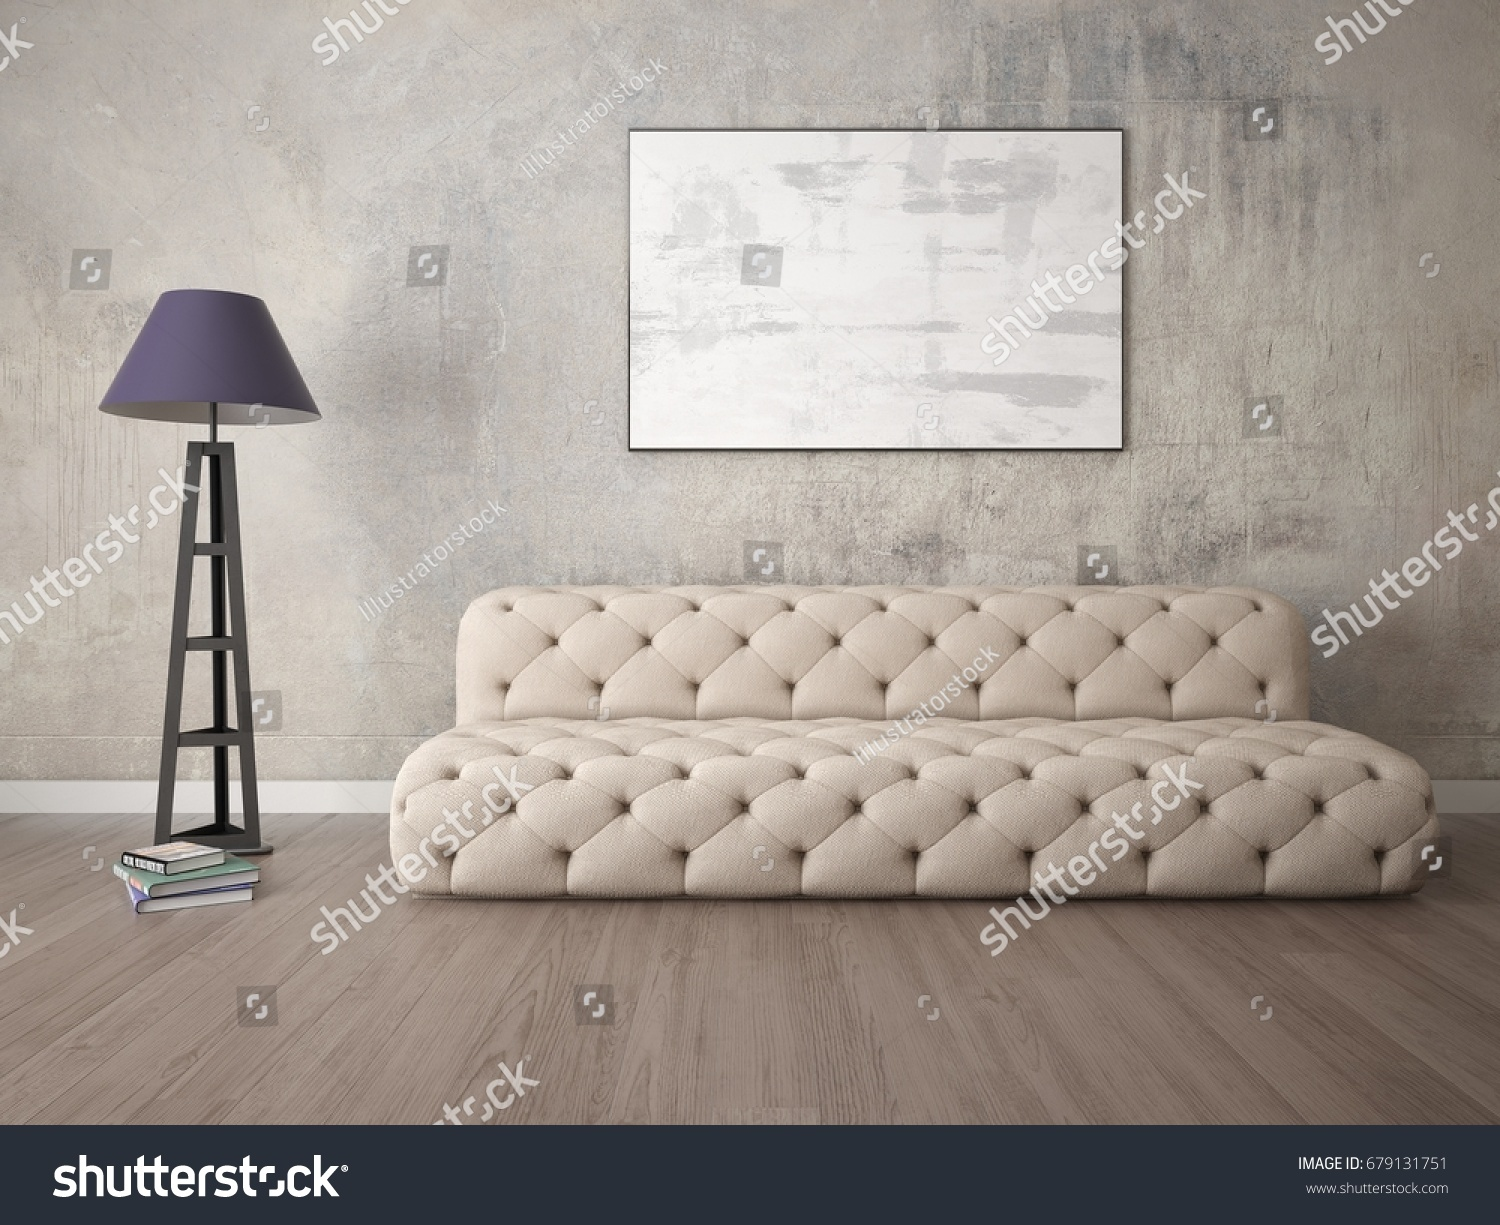 exclusive living room furniture. Mock up an exclusive living room with a fashionable sofa and classic  floor lamp Exclusive Living Room Fashionable Sofa Stock Illustration